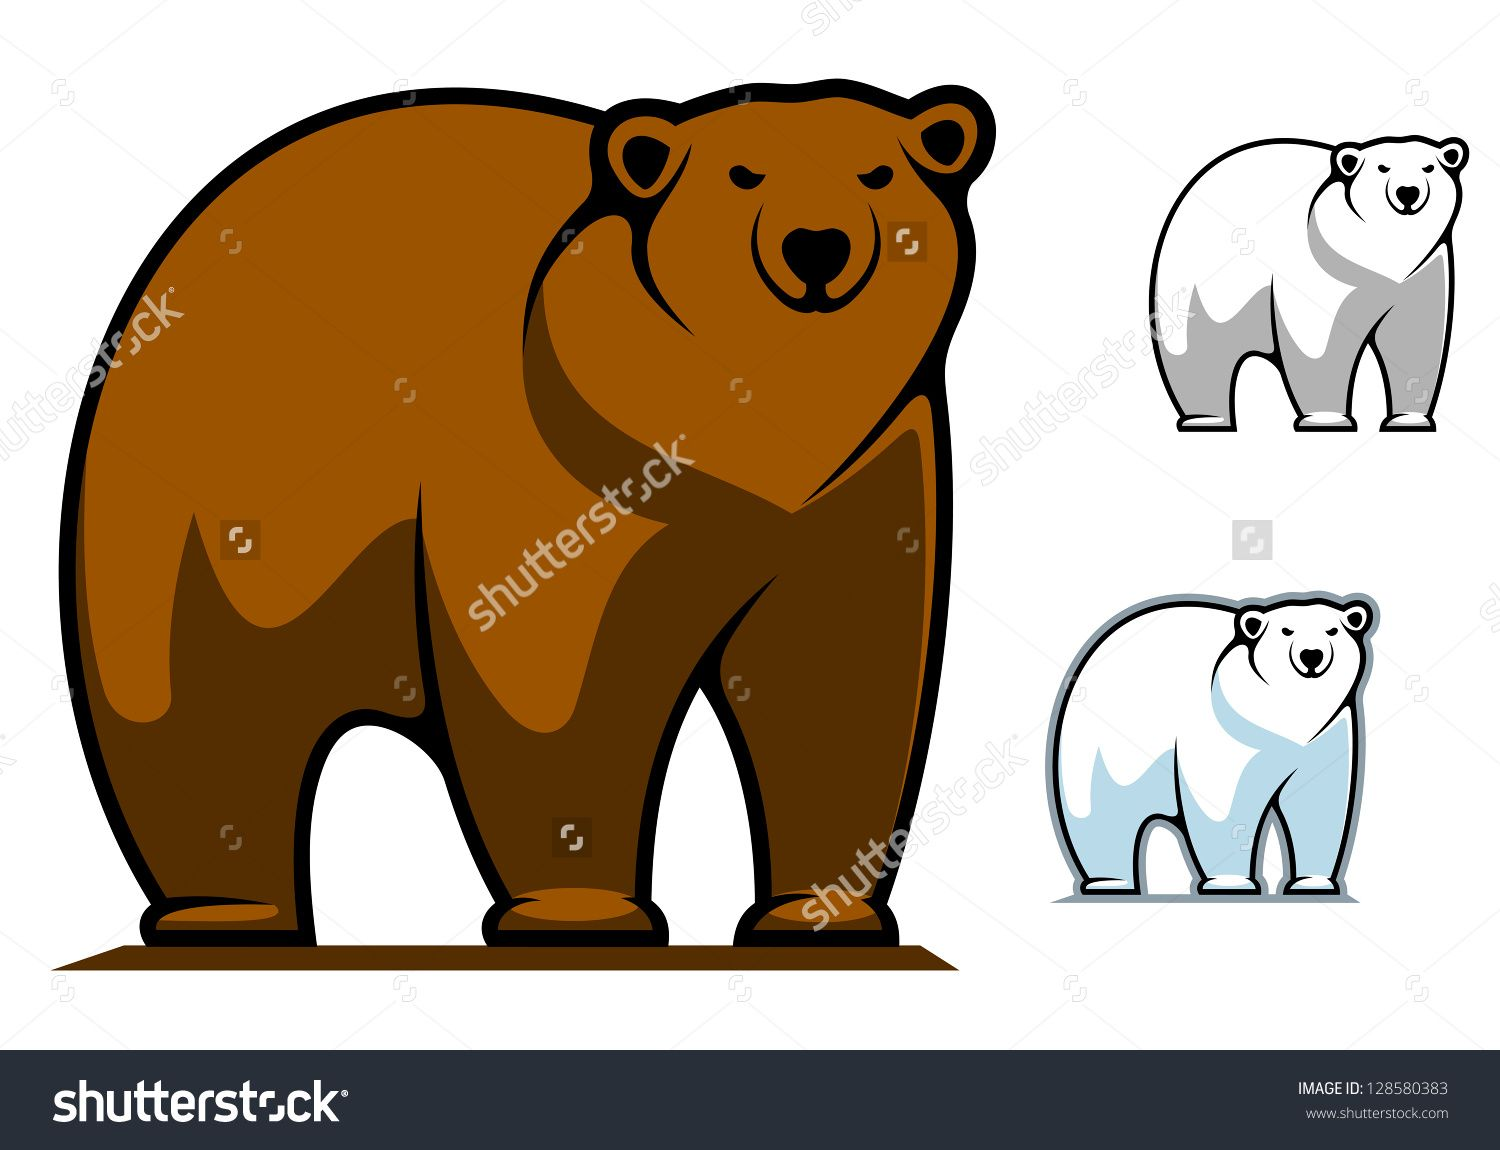 Funny Cartoon Bear For Mascot Or Tattoo Design Such As